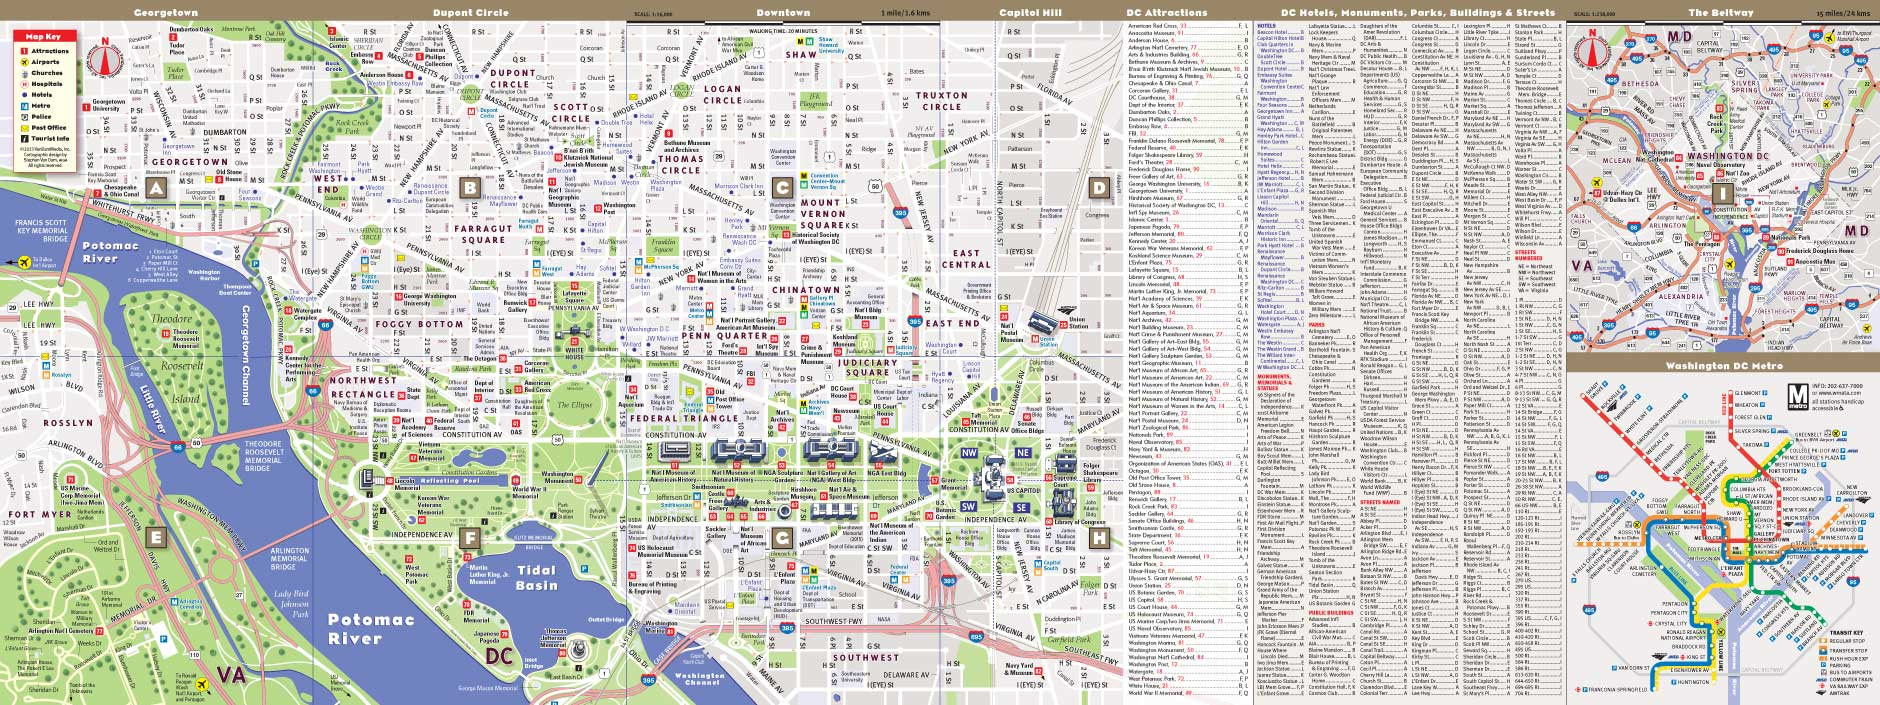 Washington Dc Map By Vandam Washington Dc Mallsmart Map City